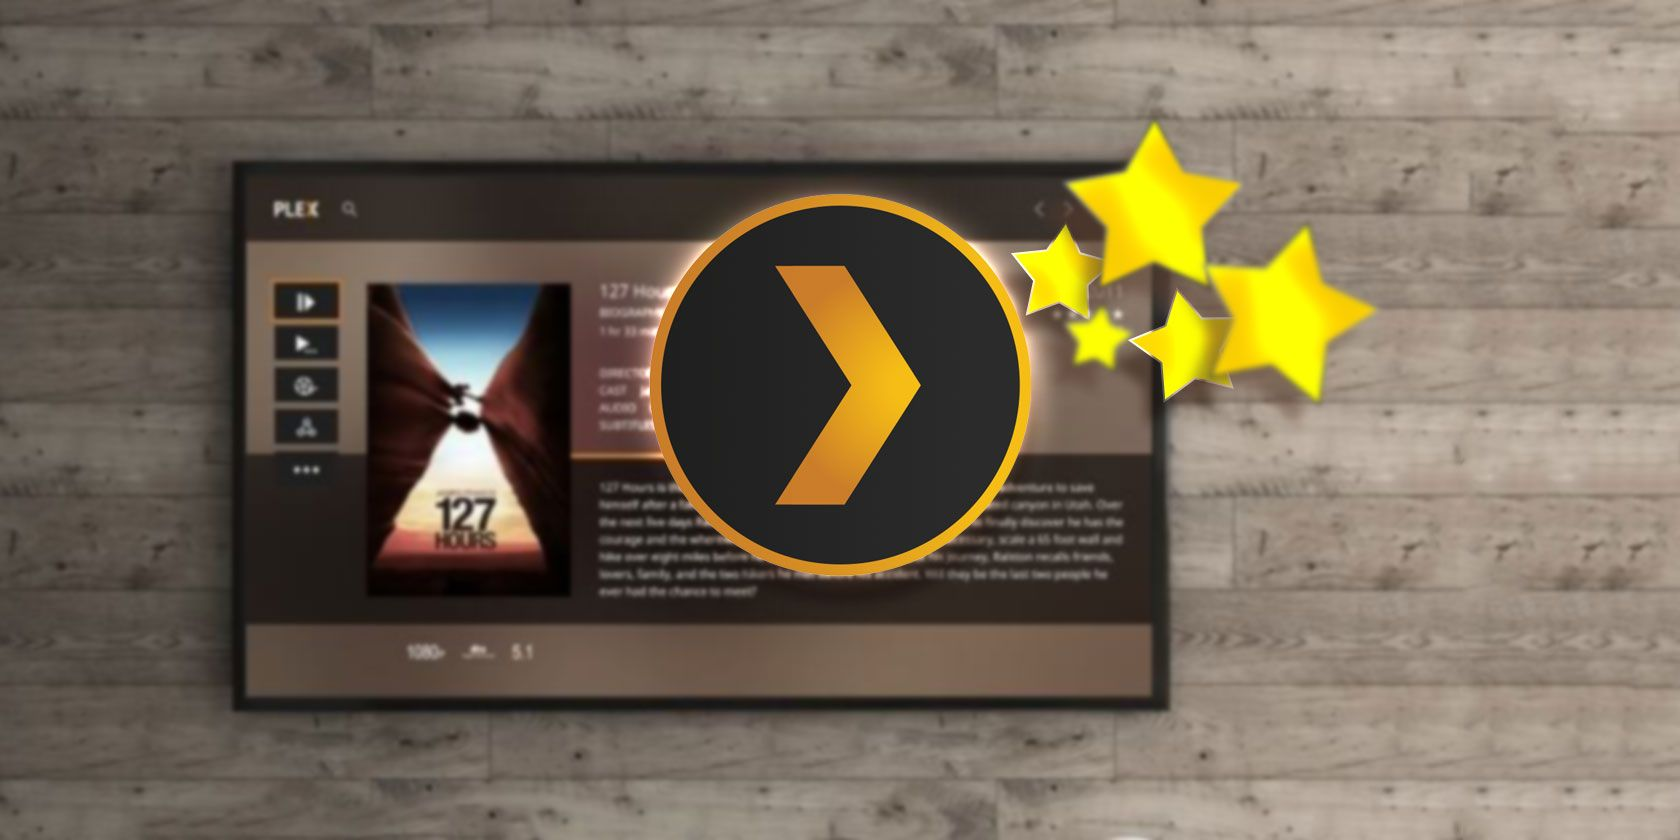 7 Important Plex Settings All Users Need to Know About